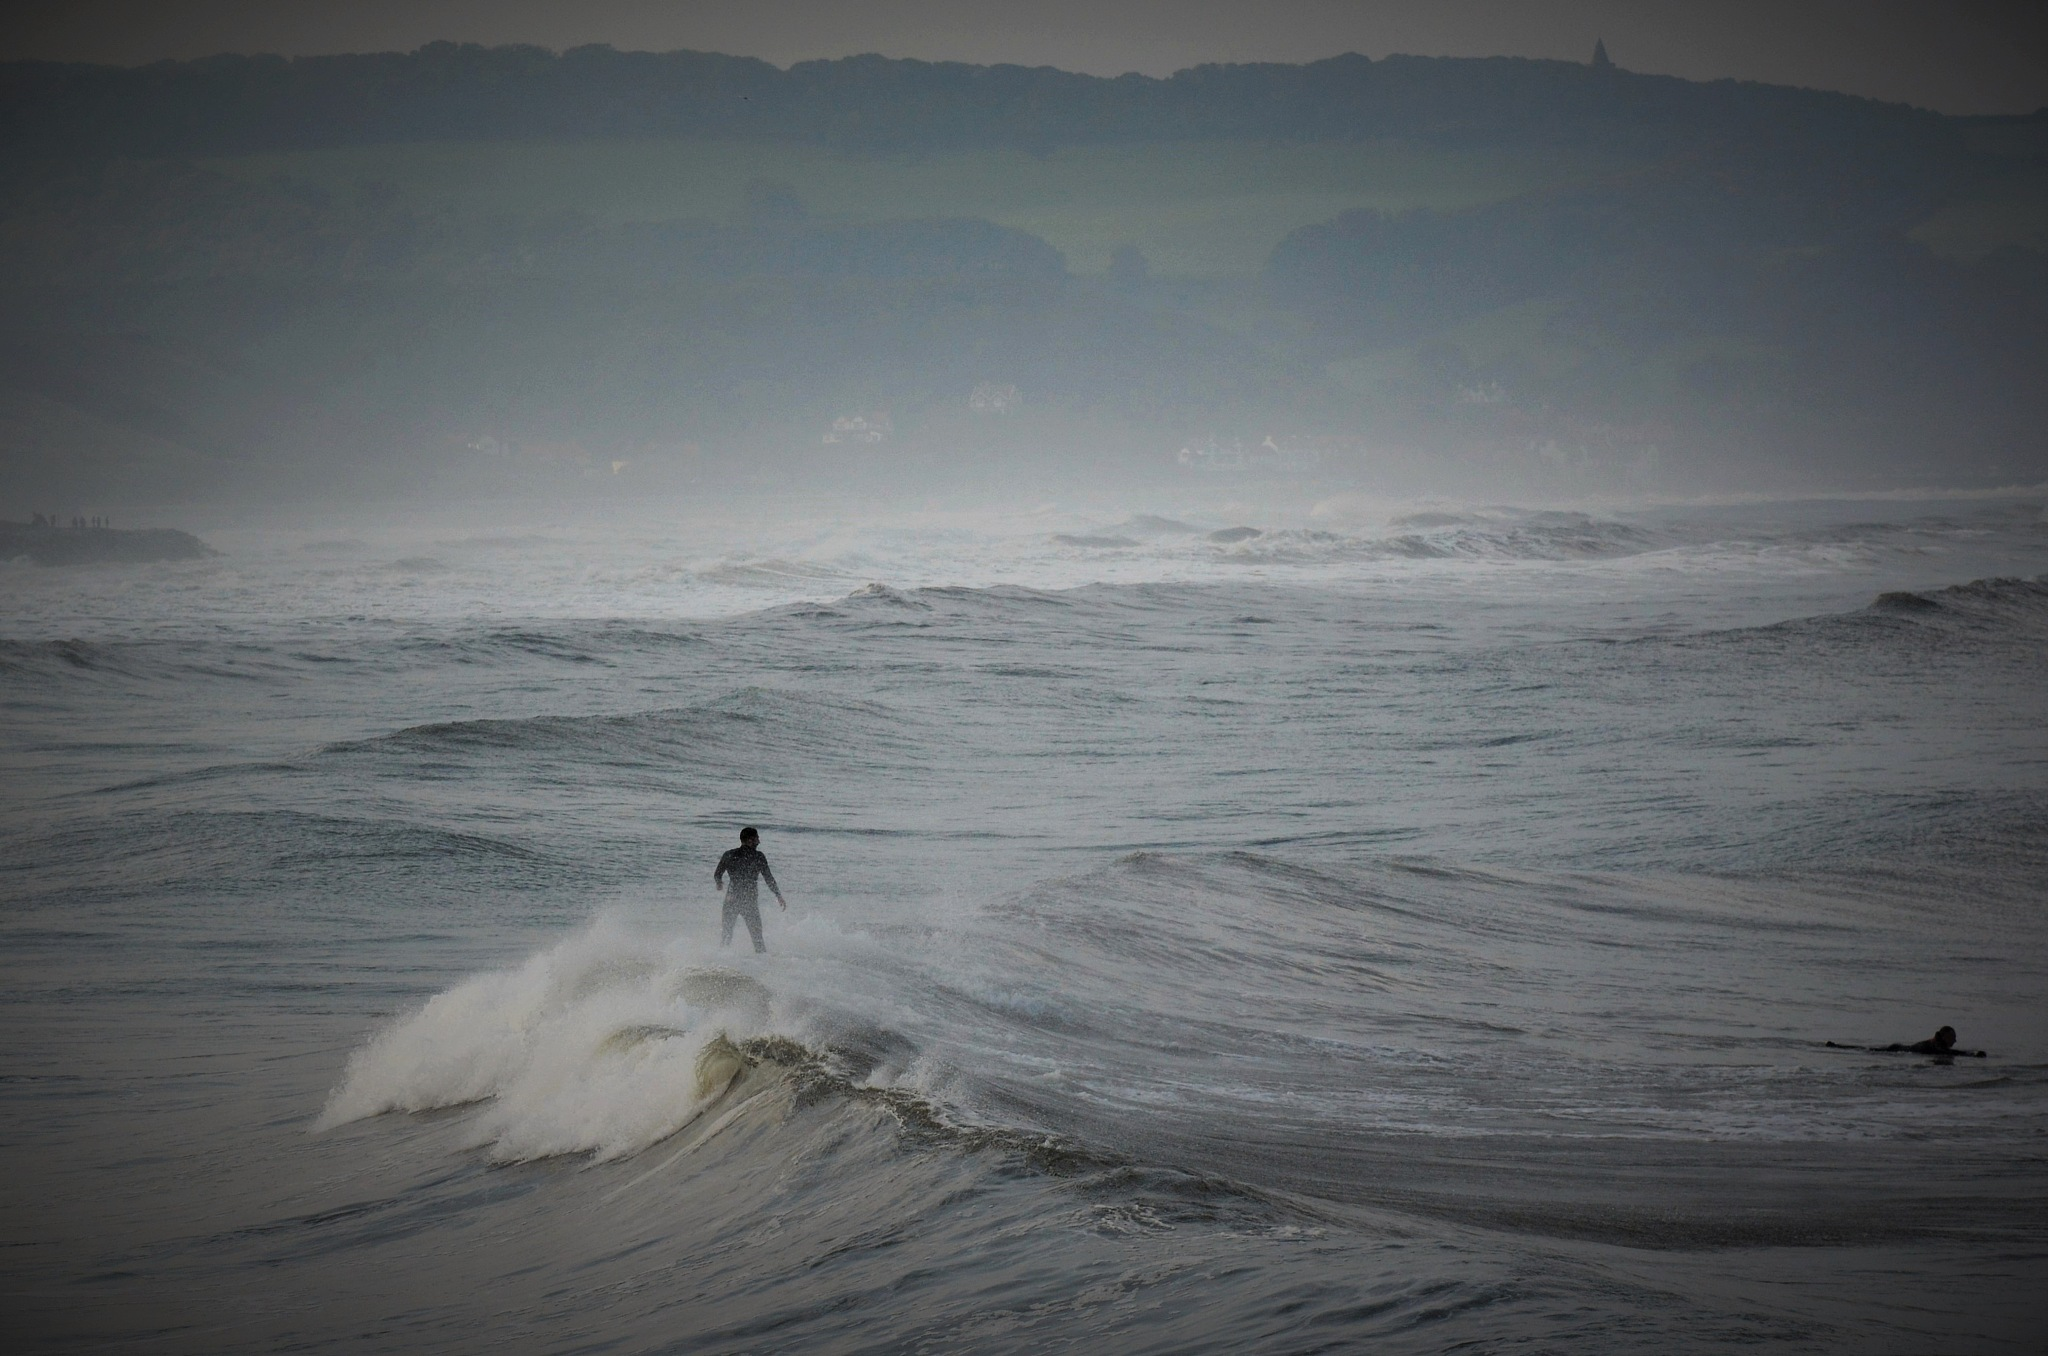 Surfer in North Sea by alison16